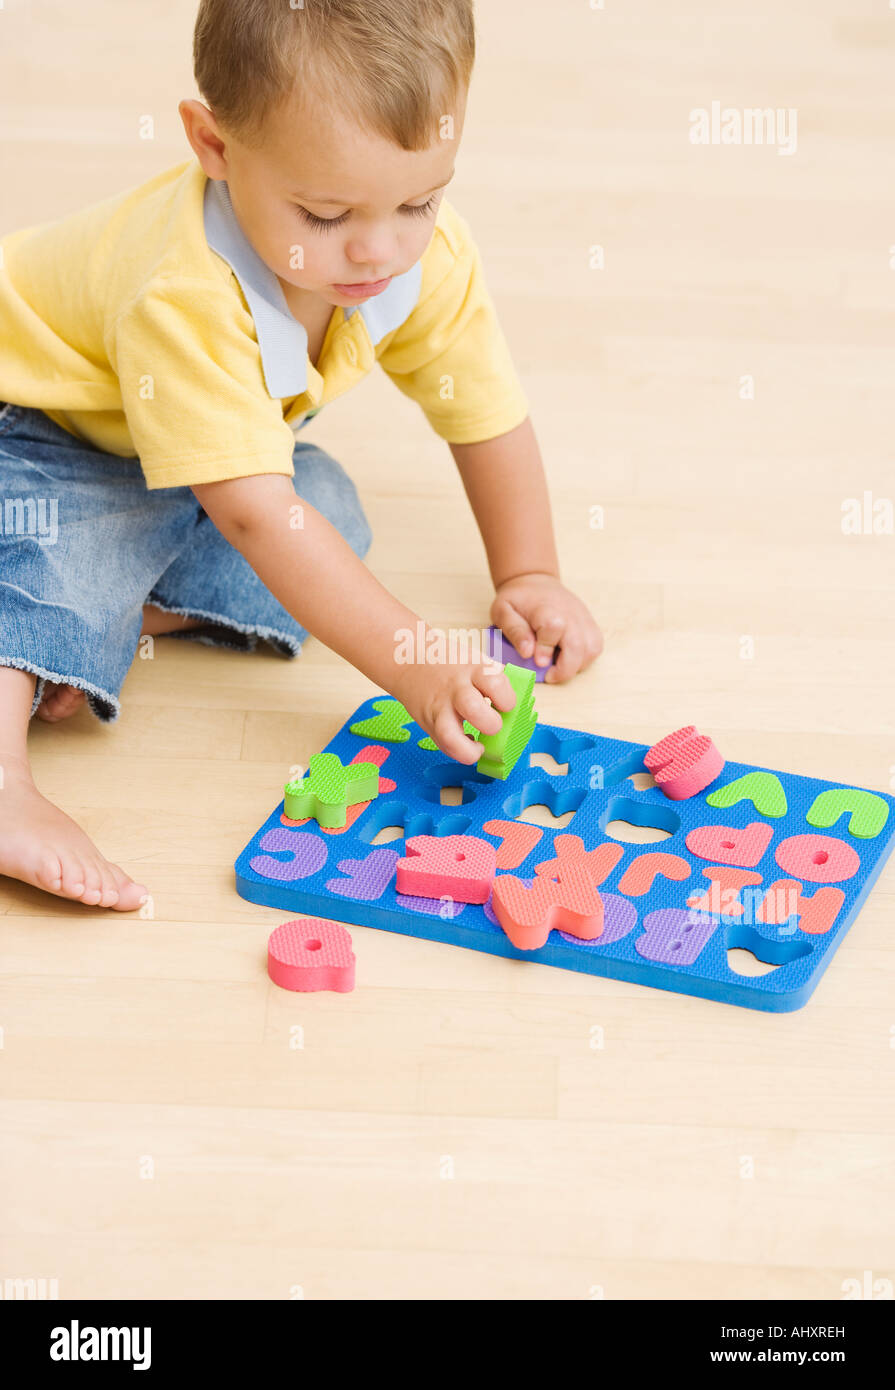 Baby playing with foam letters - Stock Image